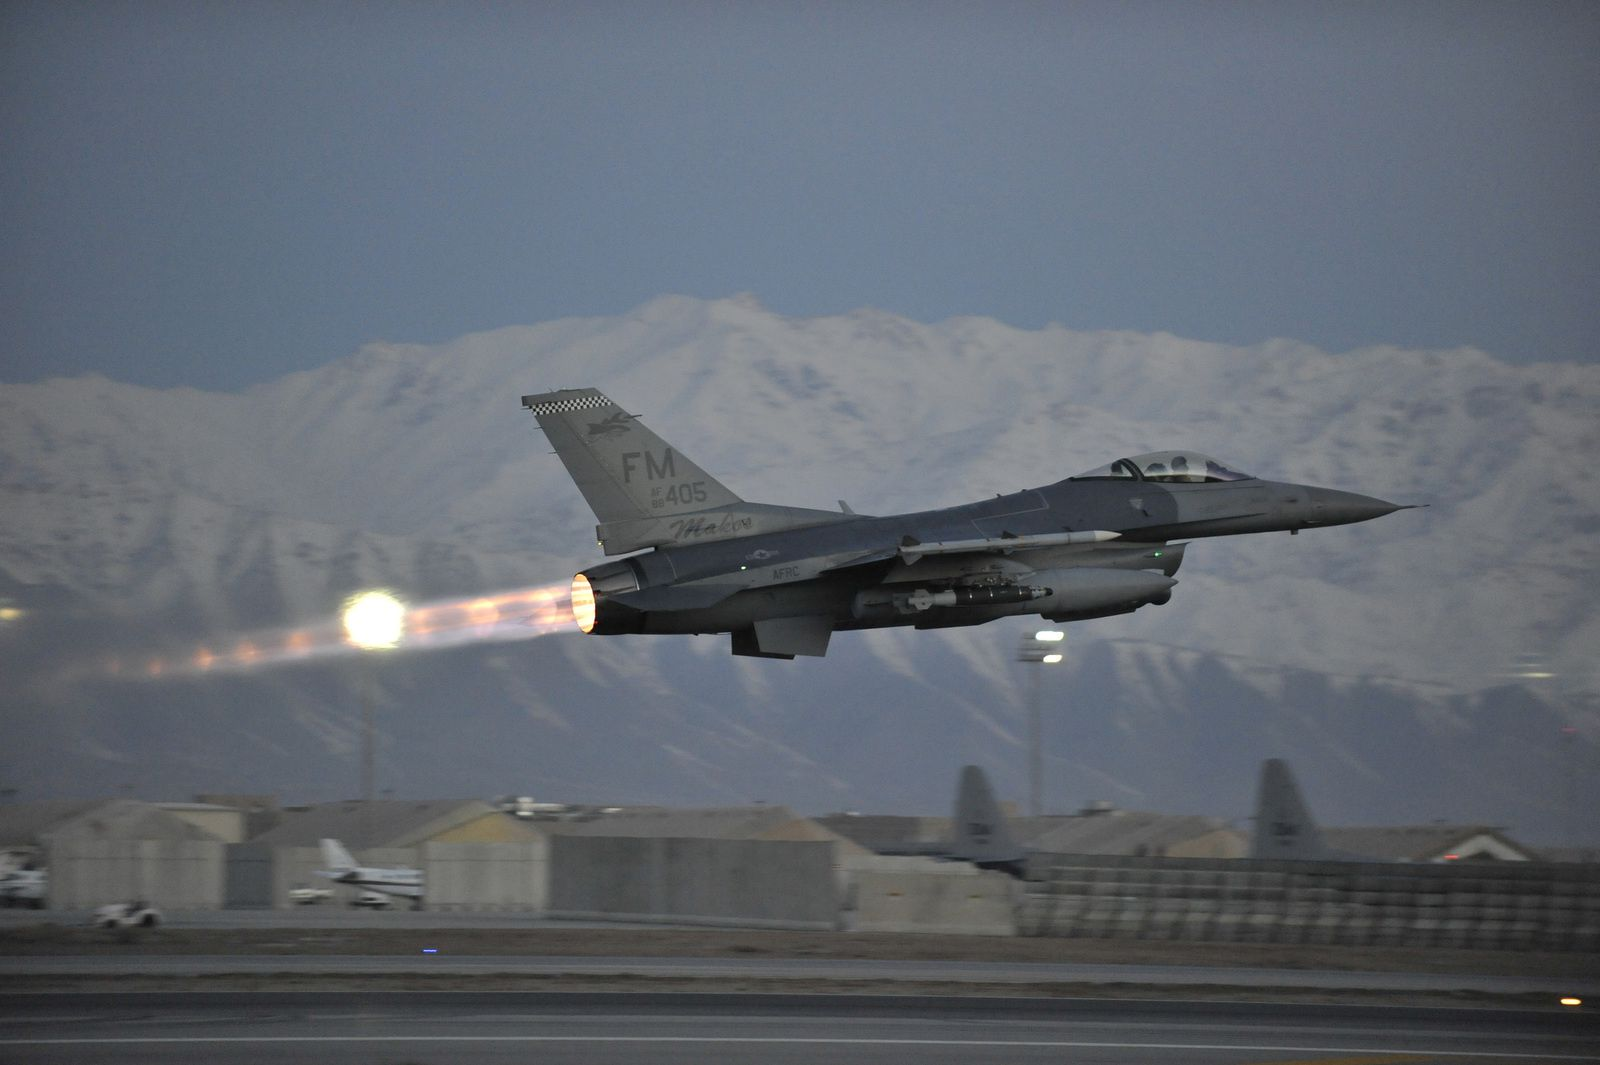 Un F-16 de l'US Air Force s'écrase pendant son décollage en Afghanistan